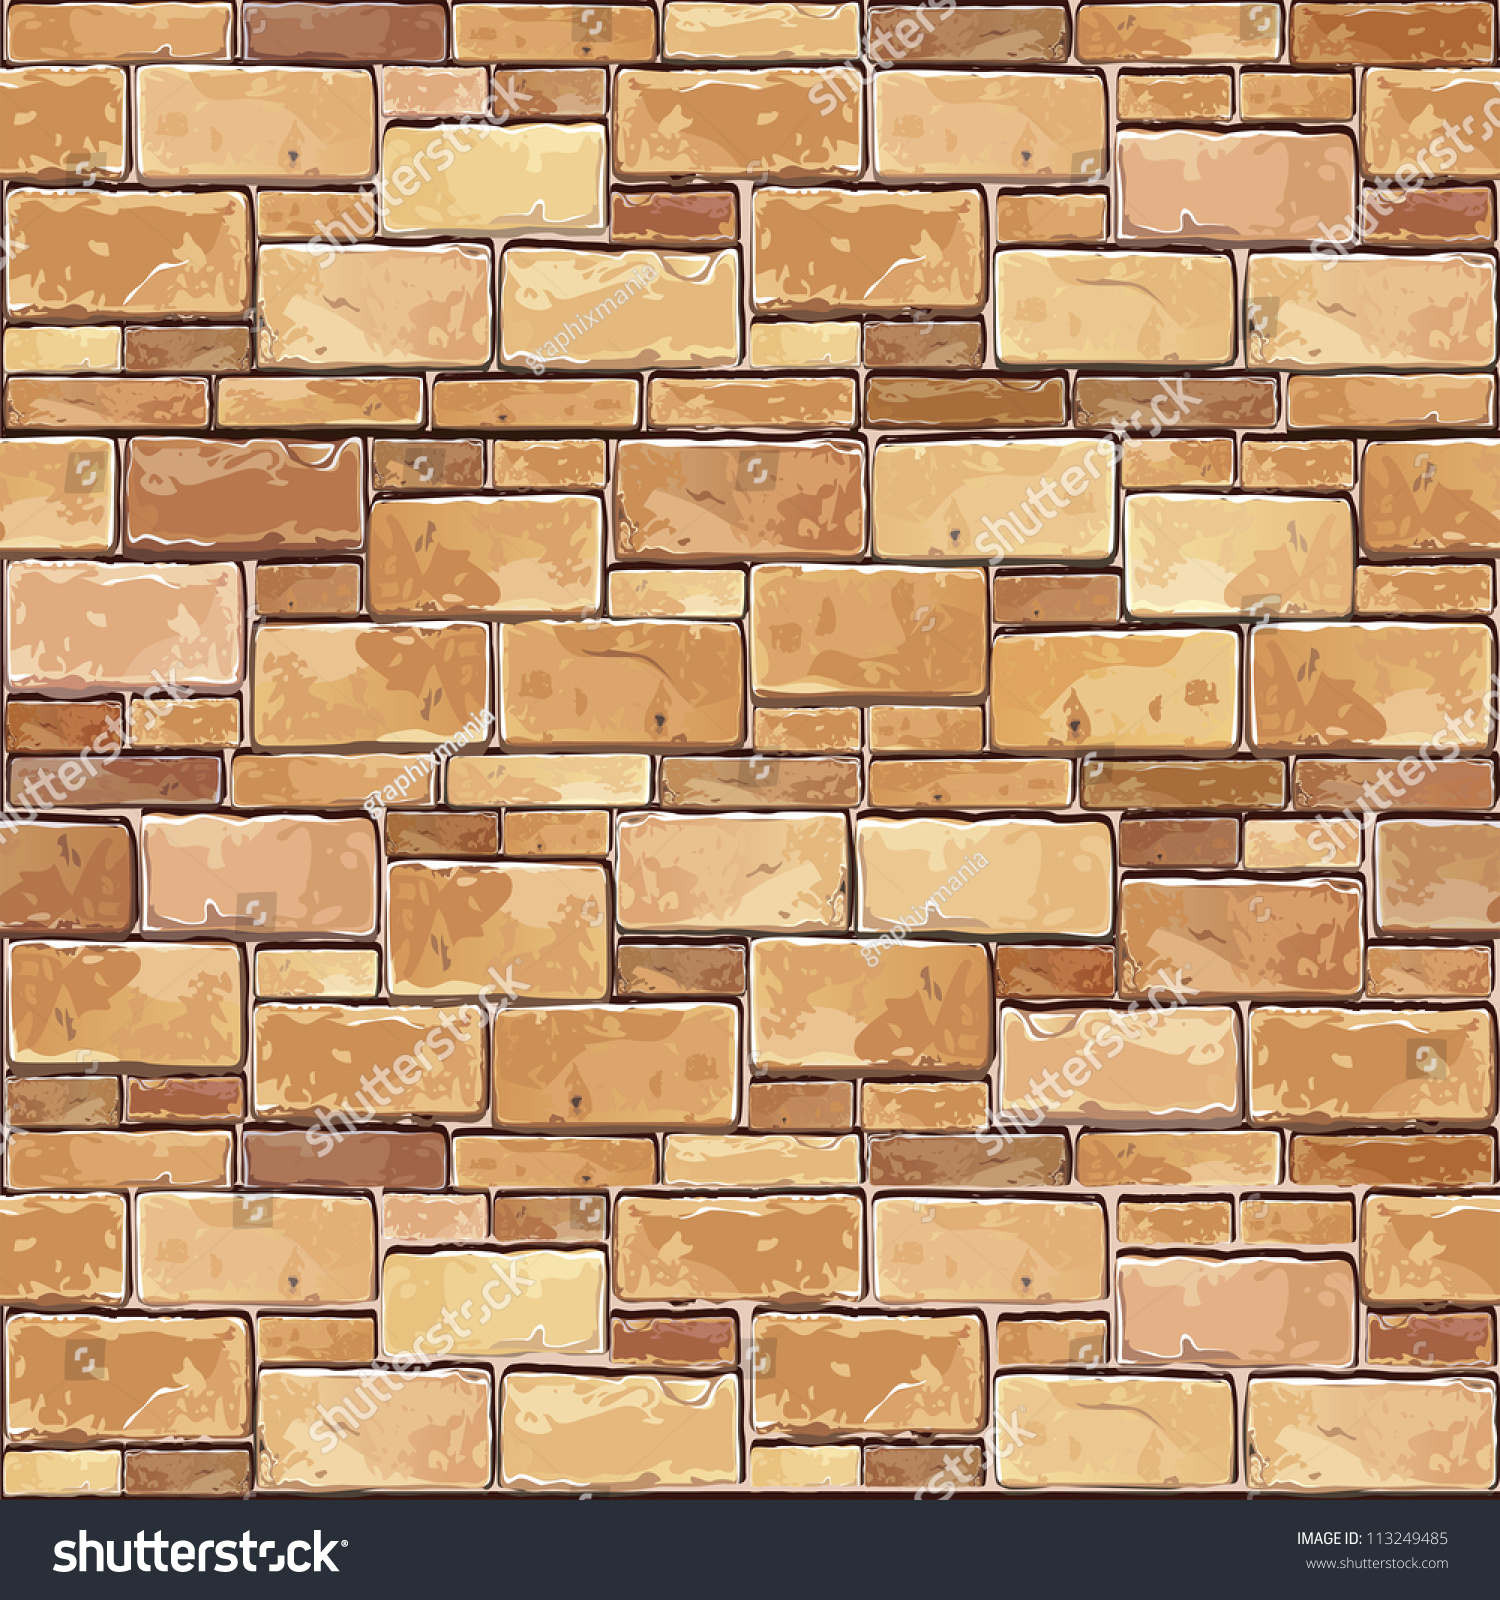 Stone Brick wall seamless Vector illustration background texture pattern  for continuous replicate  Stone Brick Wall. Stone Brick Texture Seamless